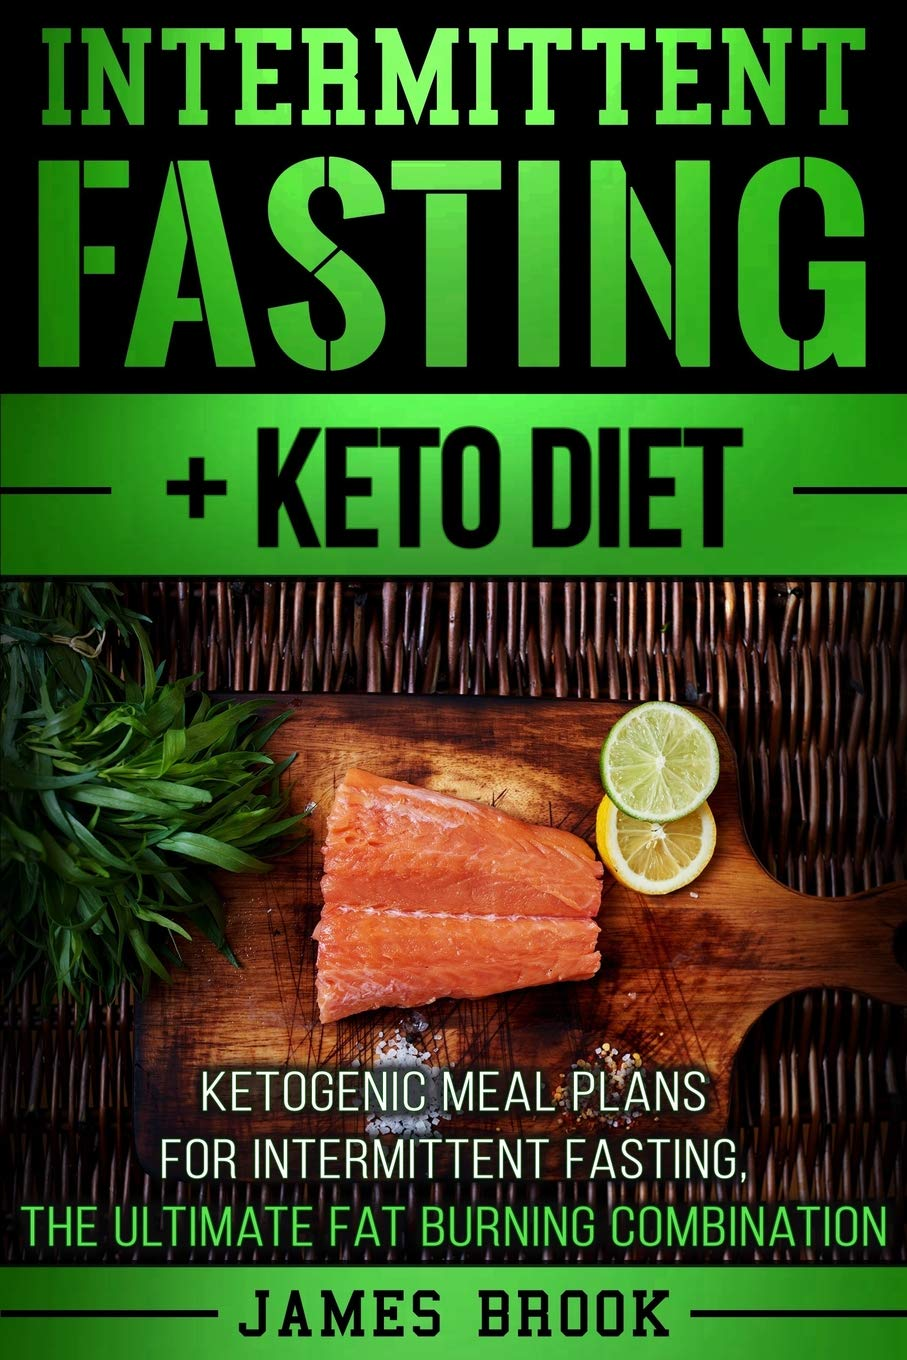 keto diet meal plan intermittent fasting